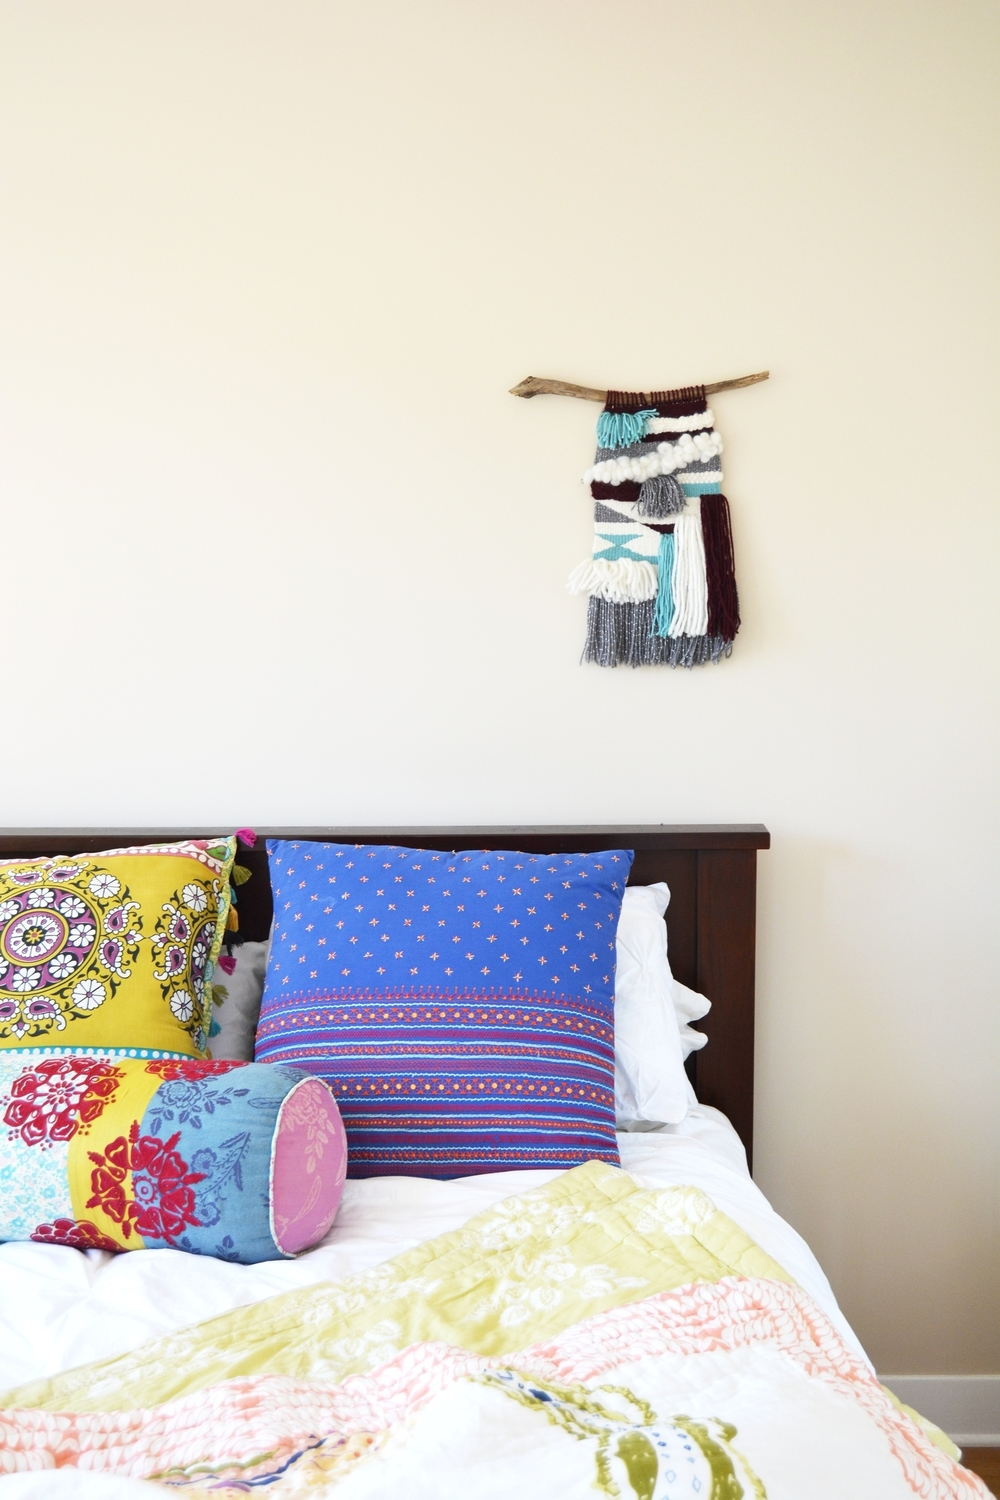 Woven Wall Hanging Tapestry - Bed